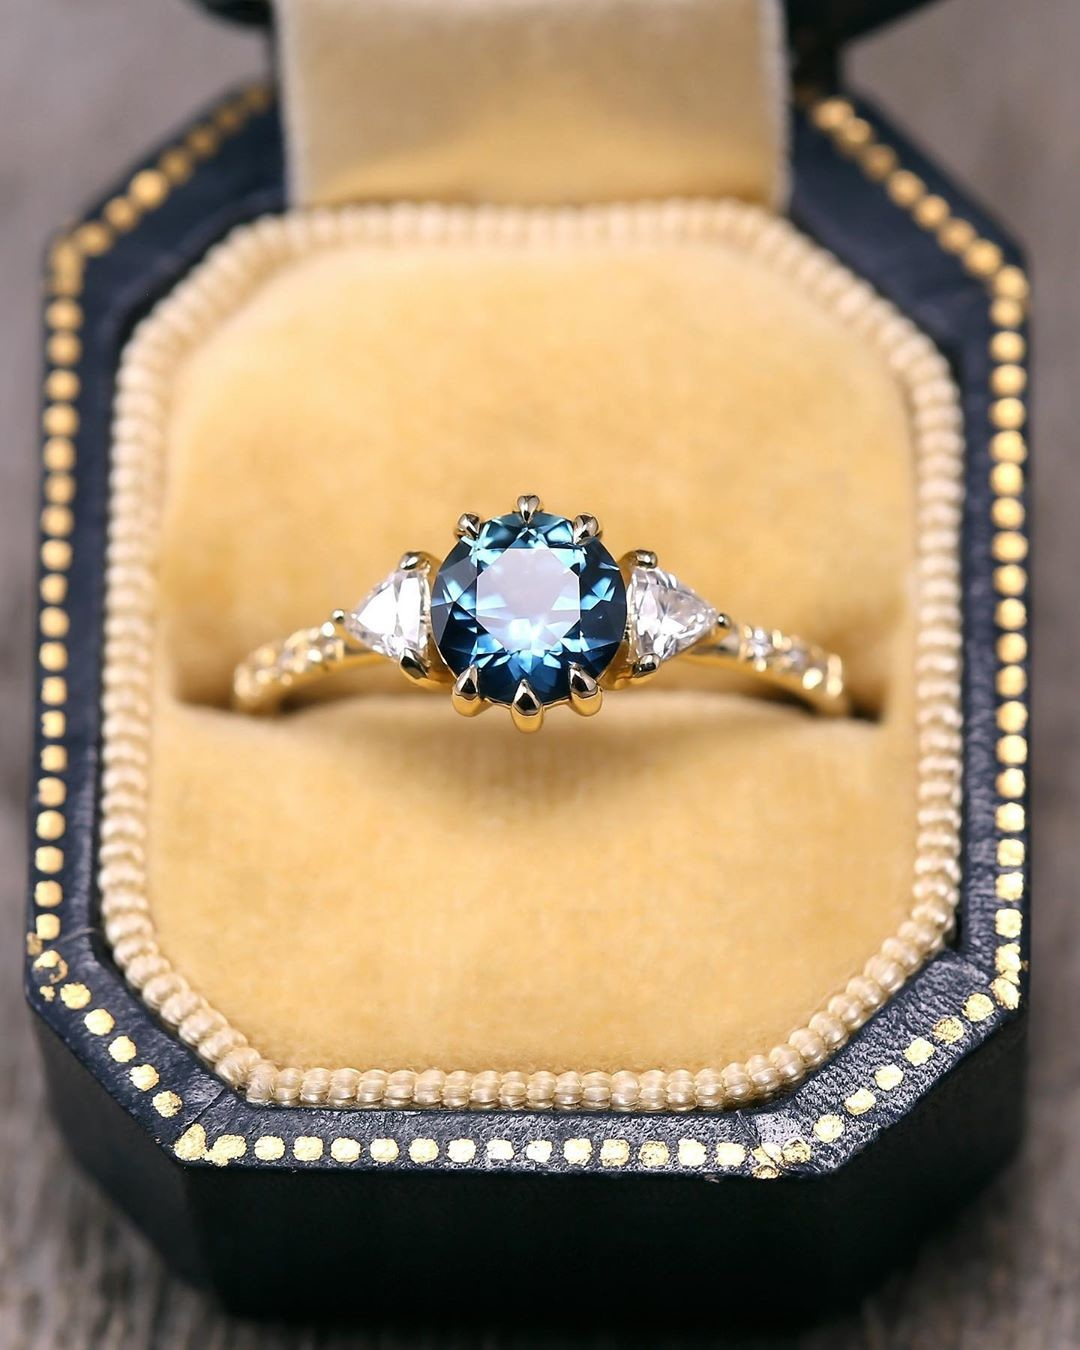 💙💫✨ loving this ring's divine color! Montana Sapphires come in sooo many beautiful colors it's hard to pick a favorite